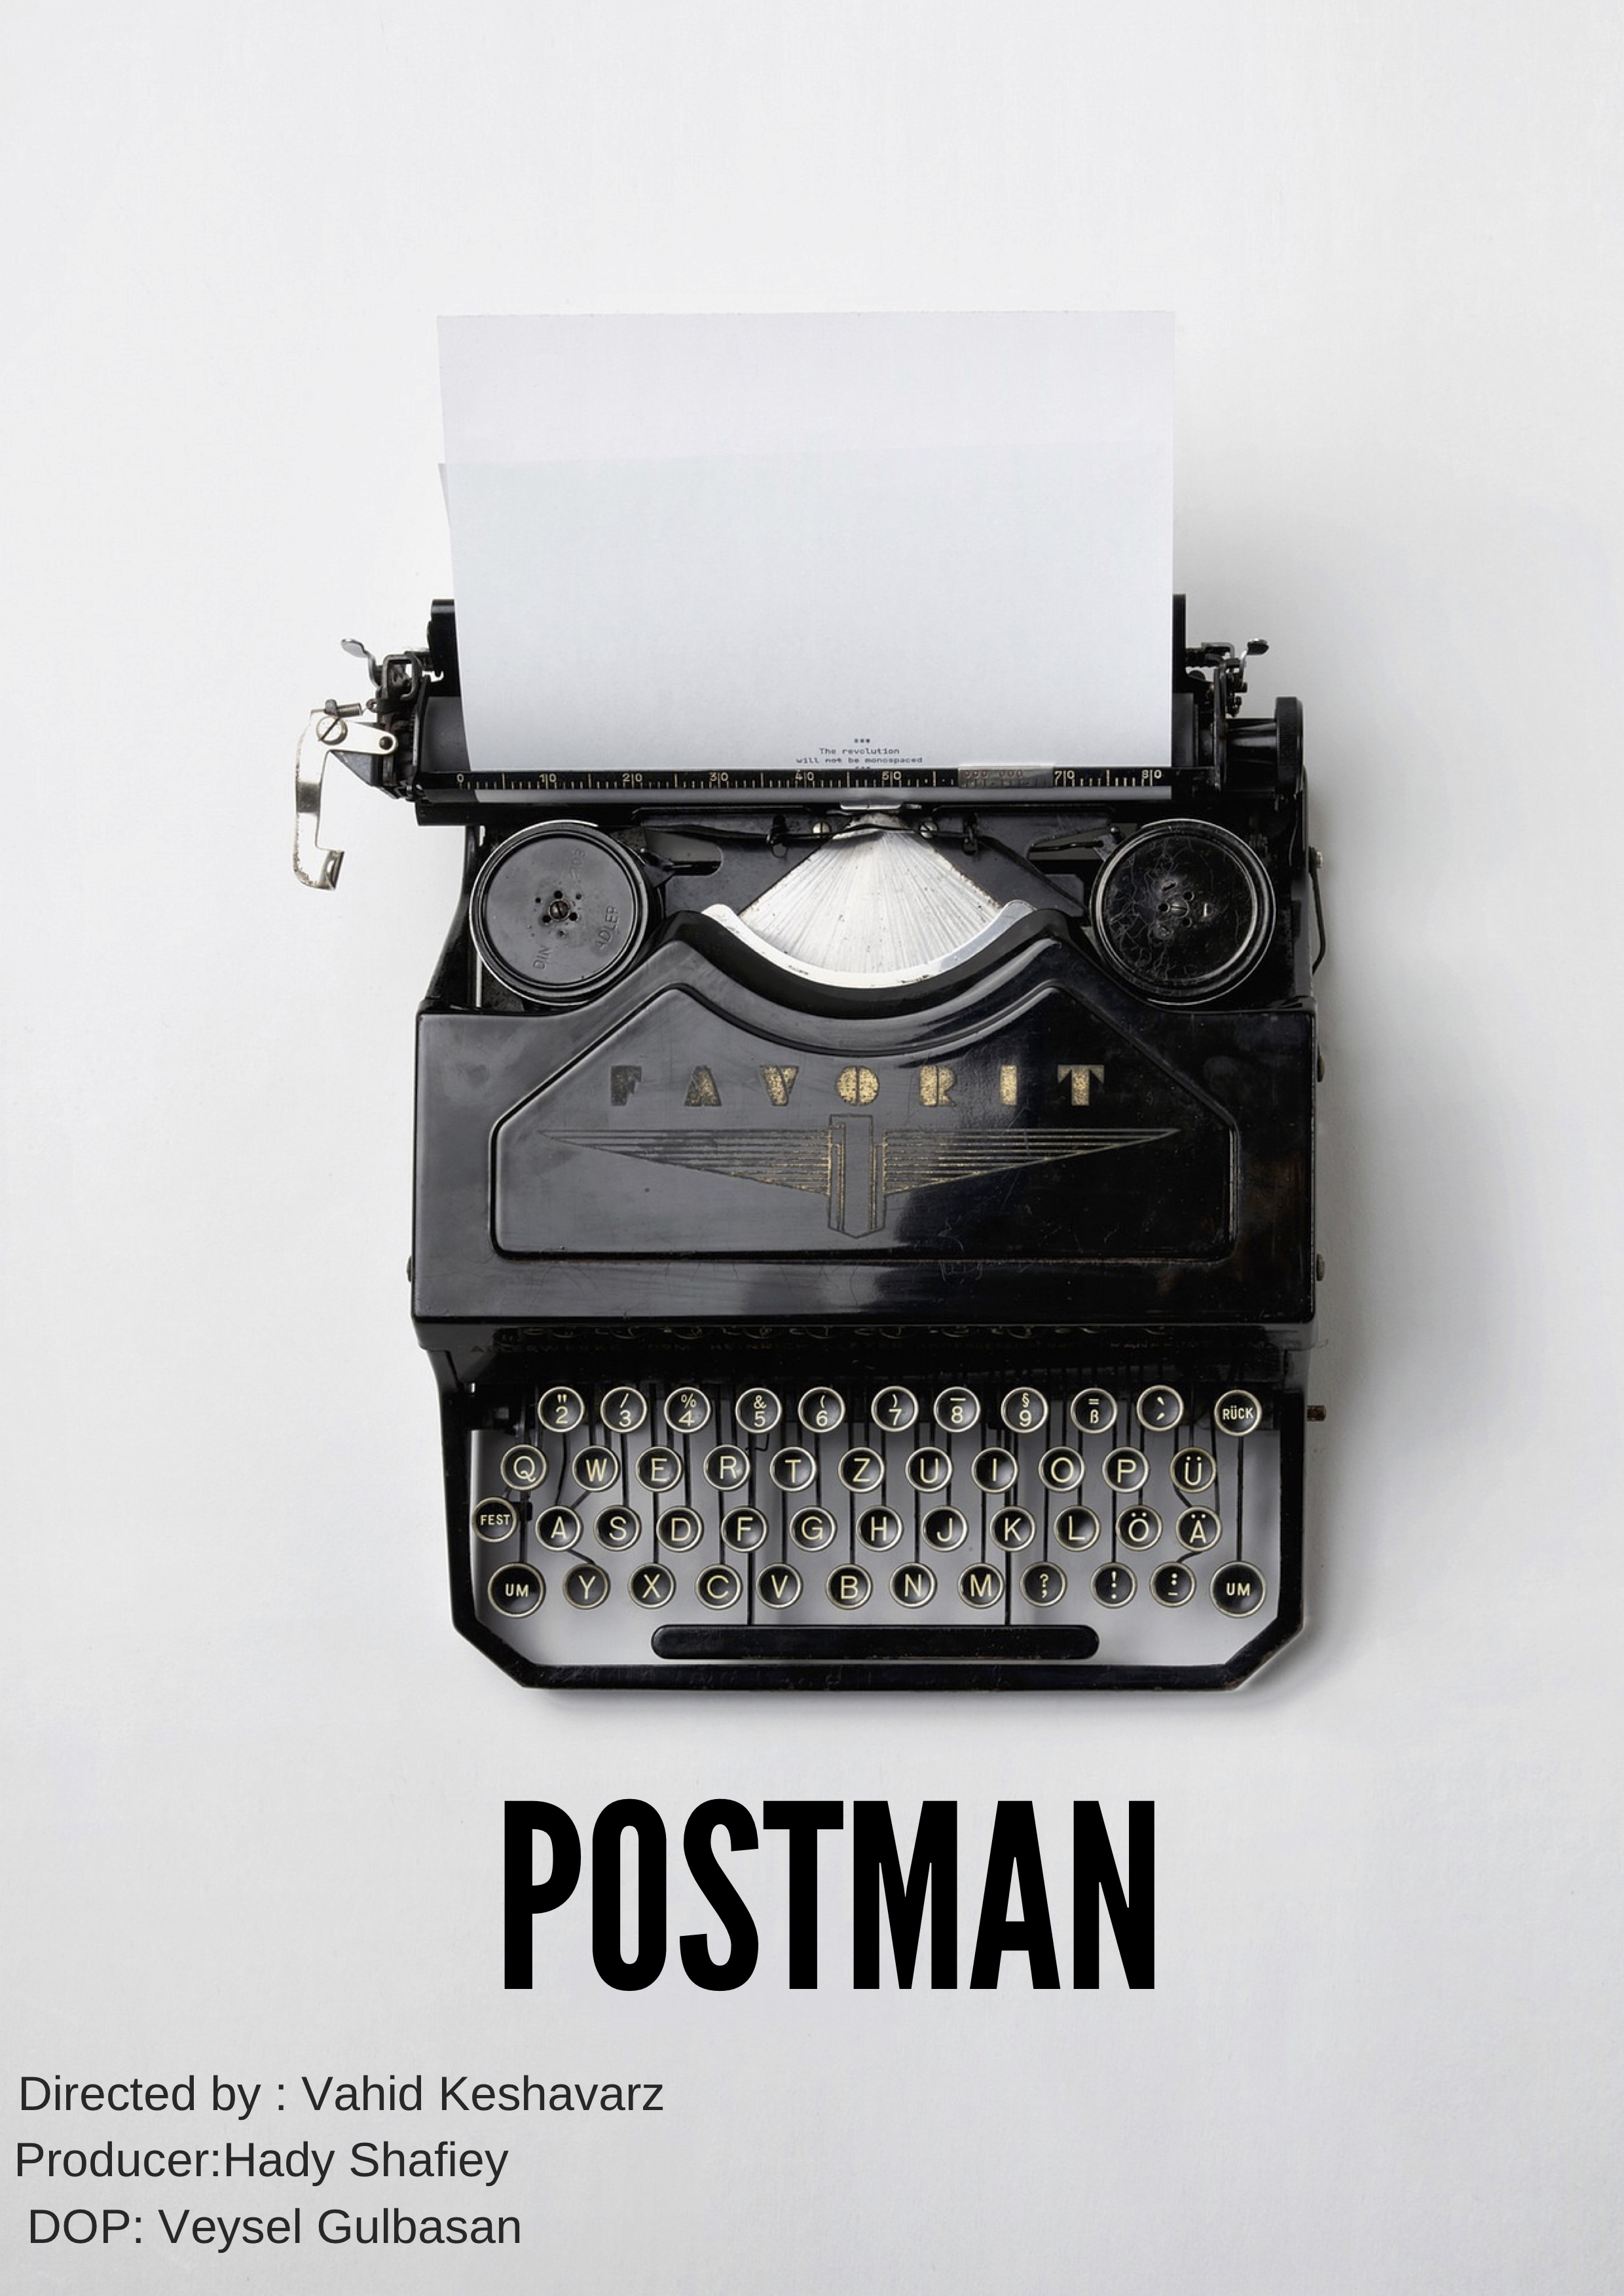 - THE POSTMAN, 2017 (UK)The Postman tells the tale of one Iranian man's daily journey in London, who writes poetry while delivering the words of others.Director: Vahid KeshavarzLength: 7minWhere and when: SOAS, Thursday 29 November, 7.30pmScreened alongside Little Pyongyang and Our Kind of Love. Tickets here